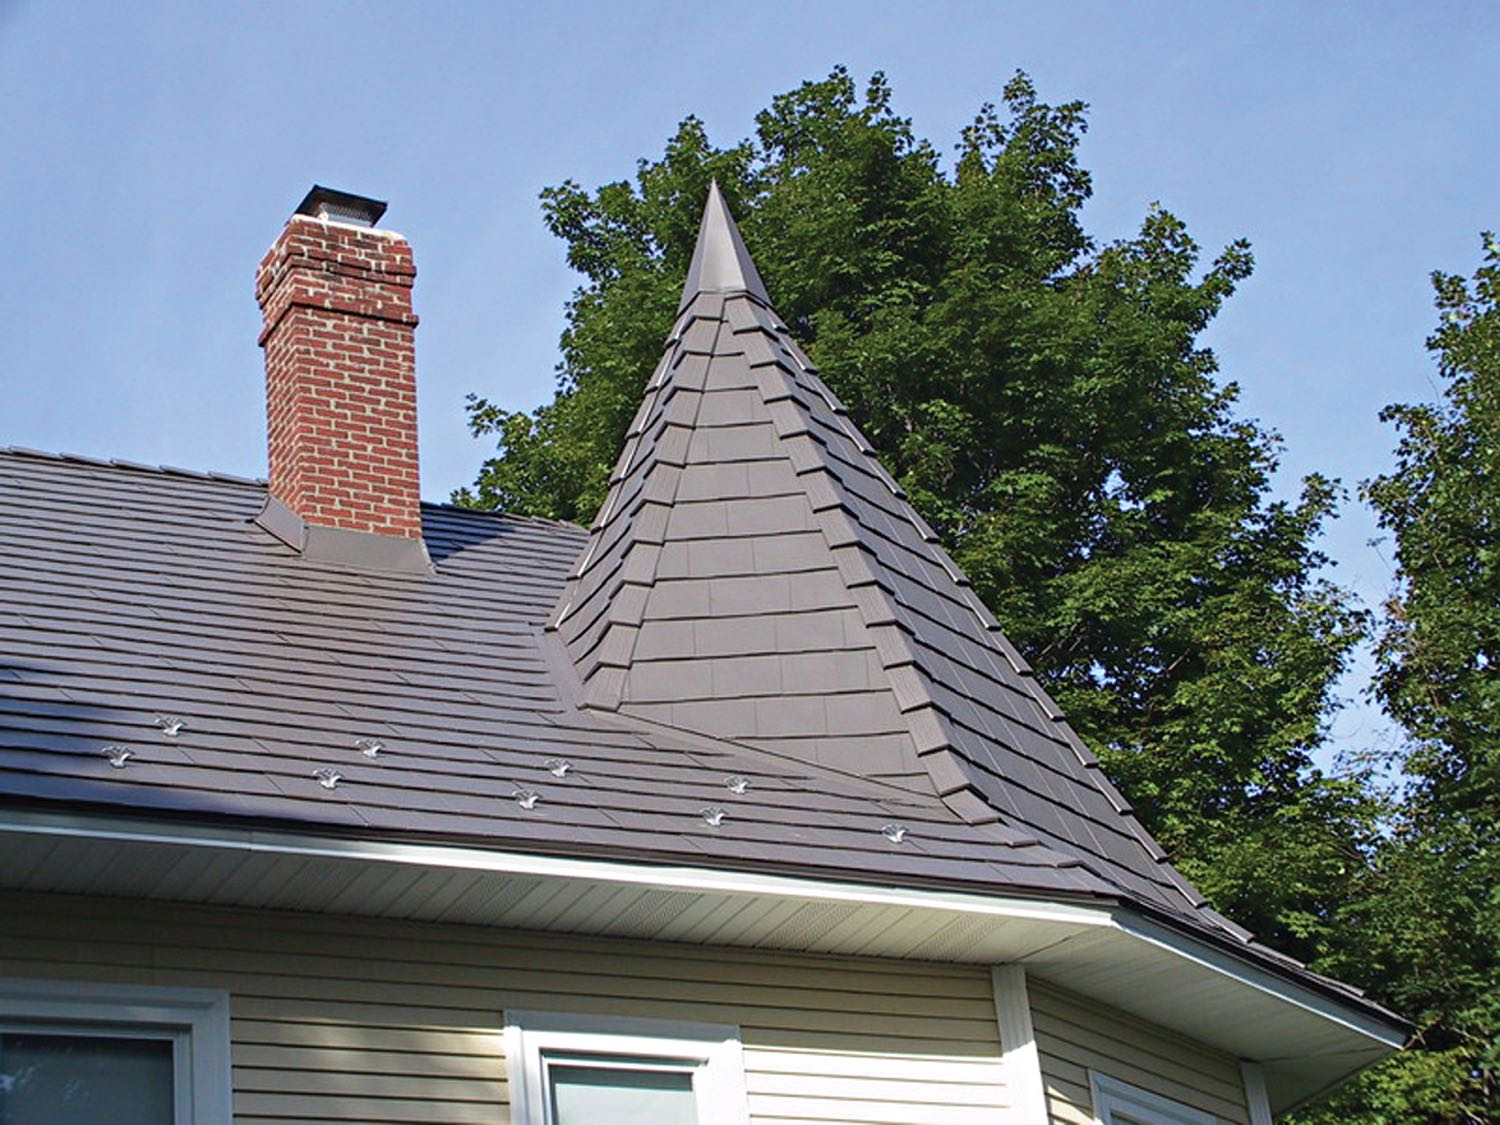 Oxford metal shingle classic metal roofing systems for Roof shingles styles